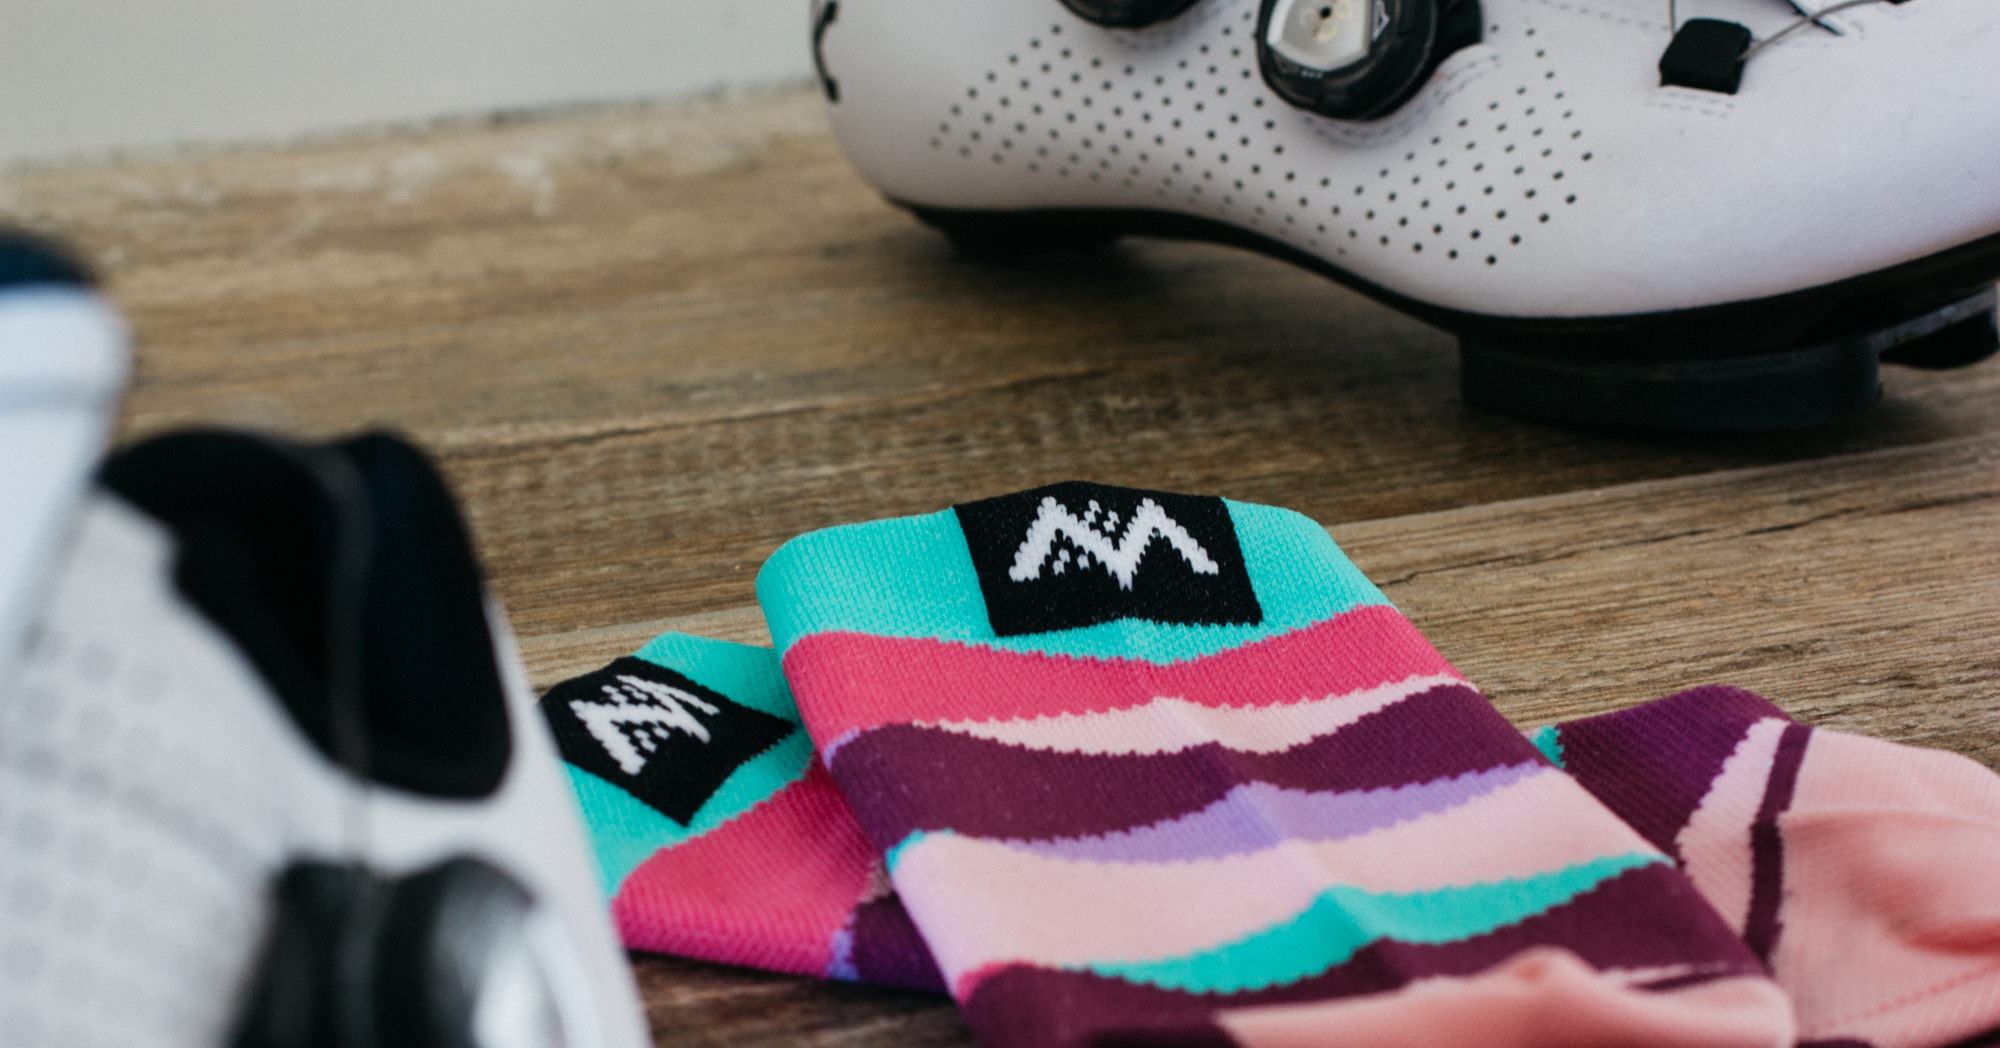 DREAMER SOCKS WITH CYCLING SHOES